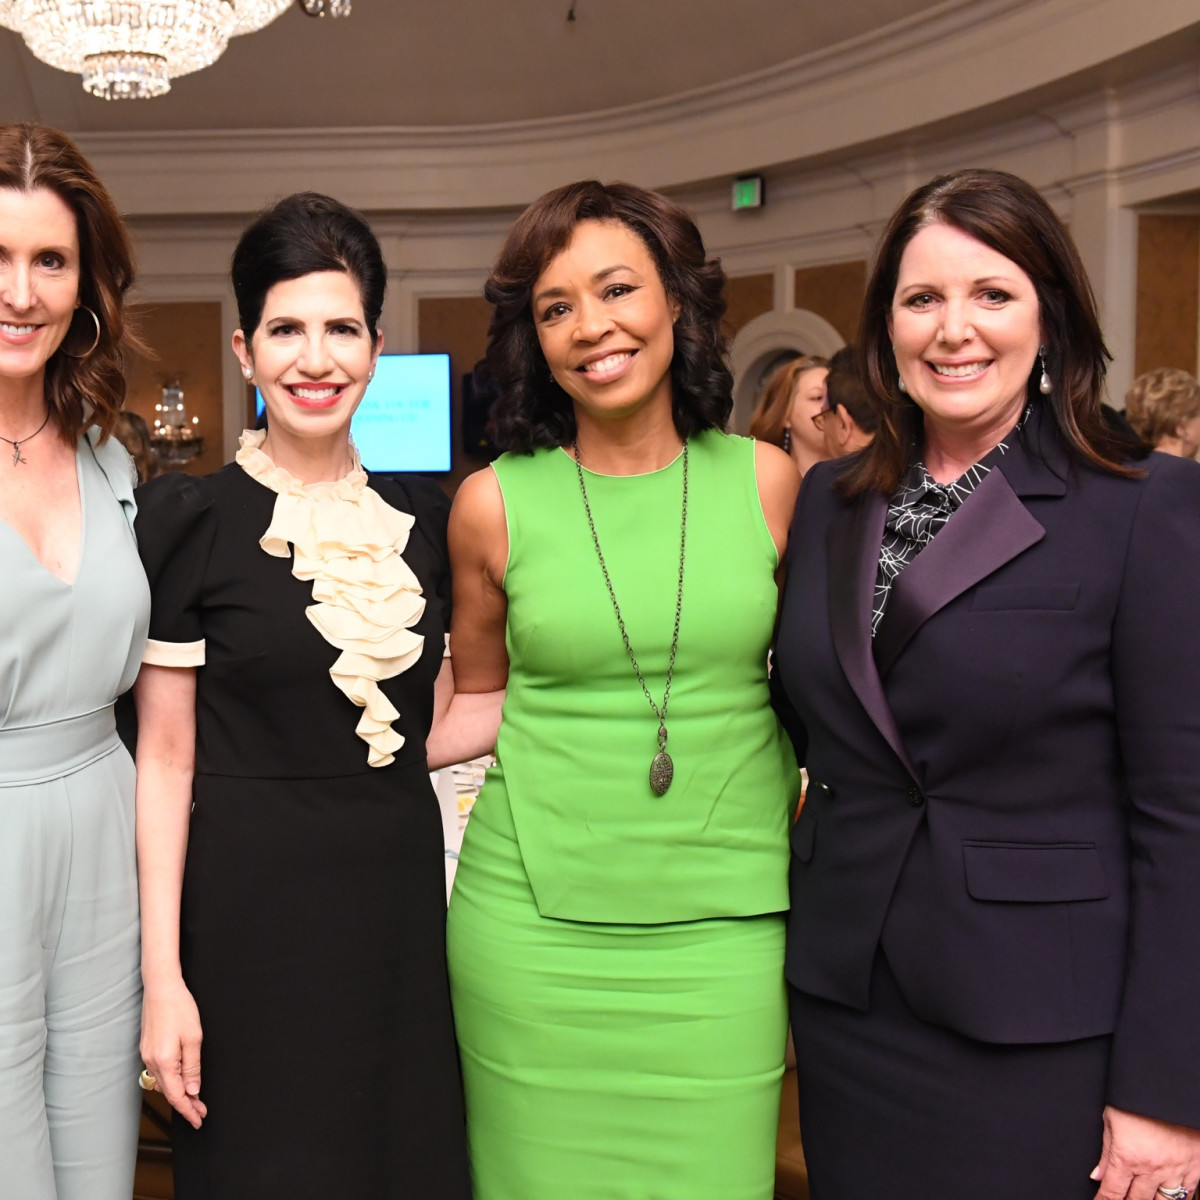 Phoebe Tudor, Kelli Cohen Fein, Gina Gaston and Julie Roberts at Passion for Fashion luncheon